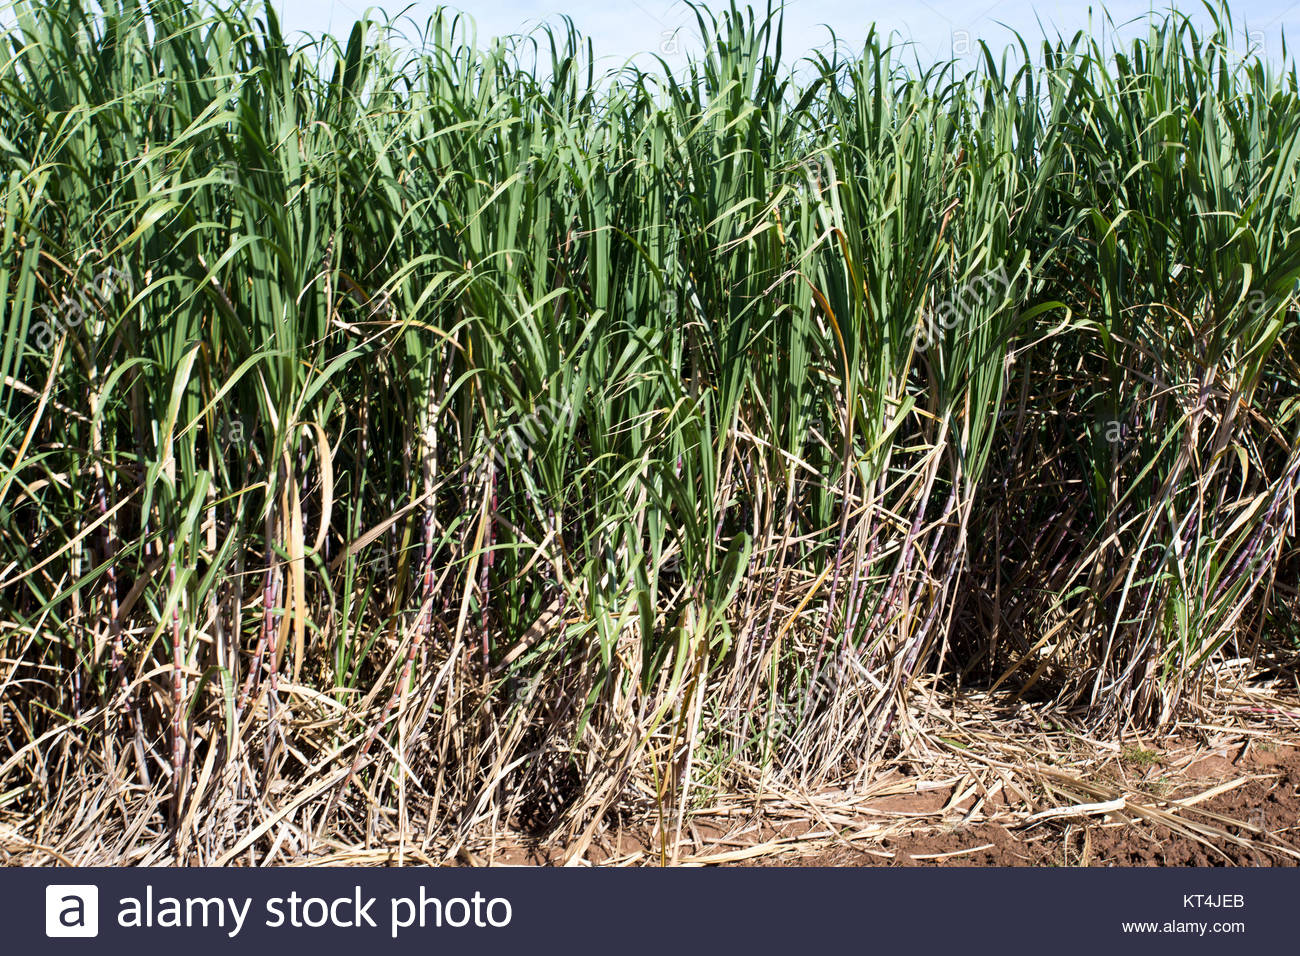 Cuba Sugar Plantation Stock Photos & Cuba Sugar Plantation ...